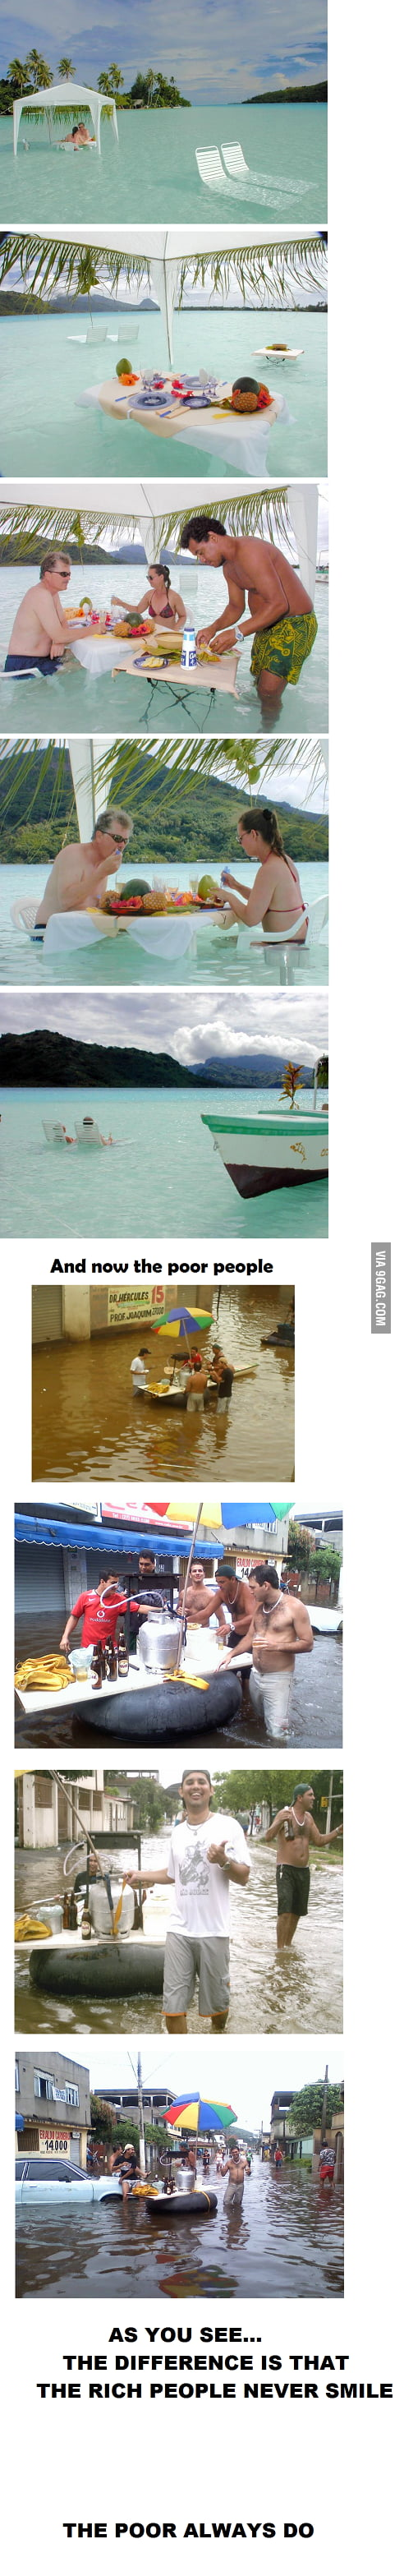 The difference between rich and poor